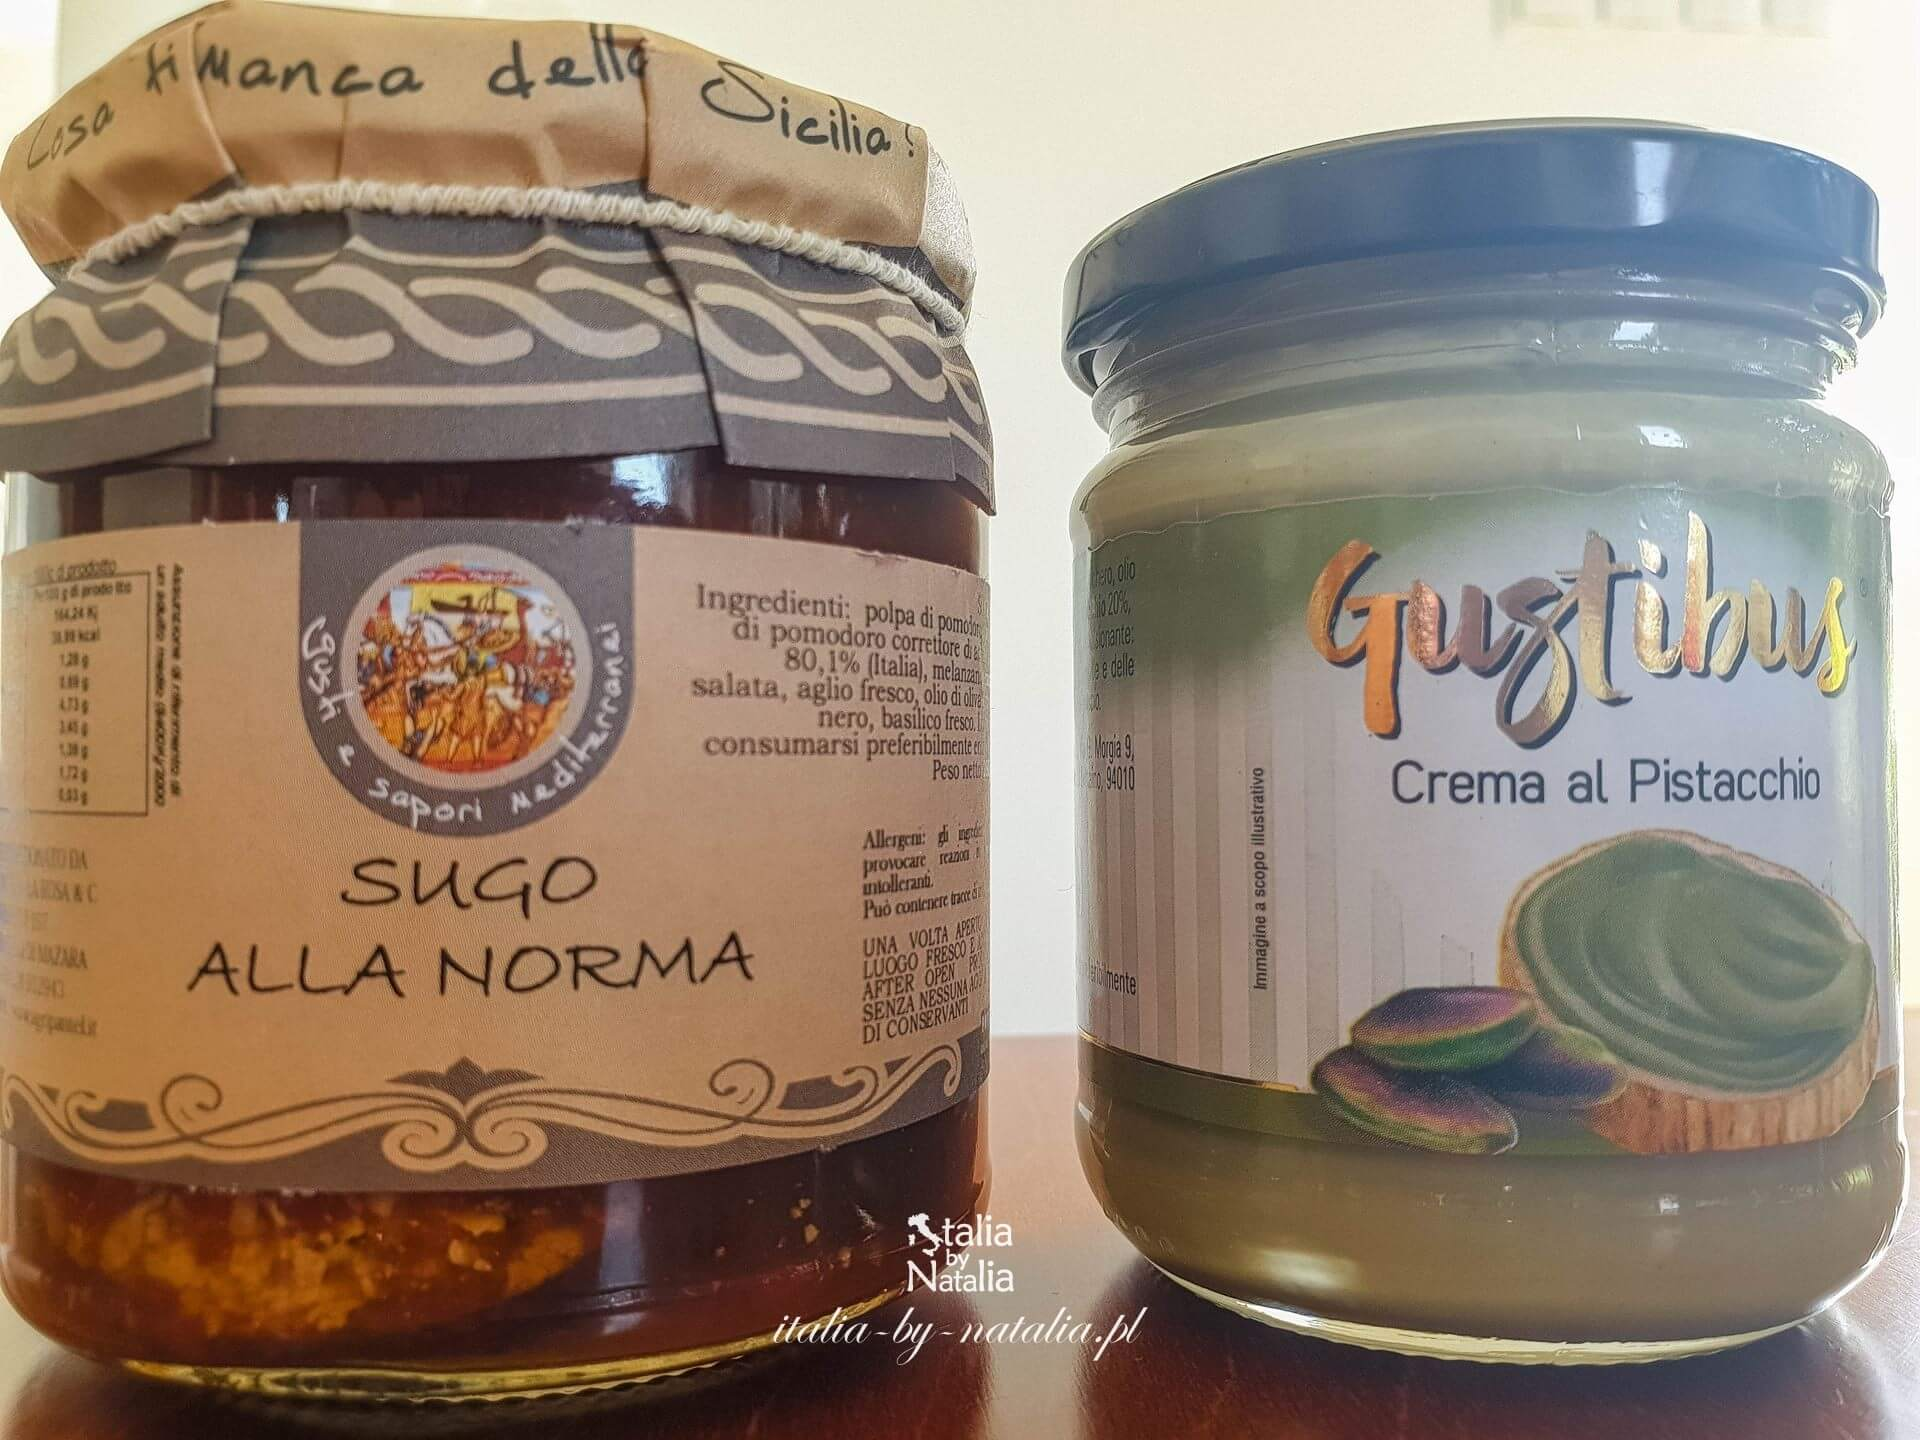 Co kupić na Sycylii? Czego spróbować? Co przywieźć z Sycylii do domu? What to buy in Sicily? What to try? What to bring back home from Sicily?